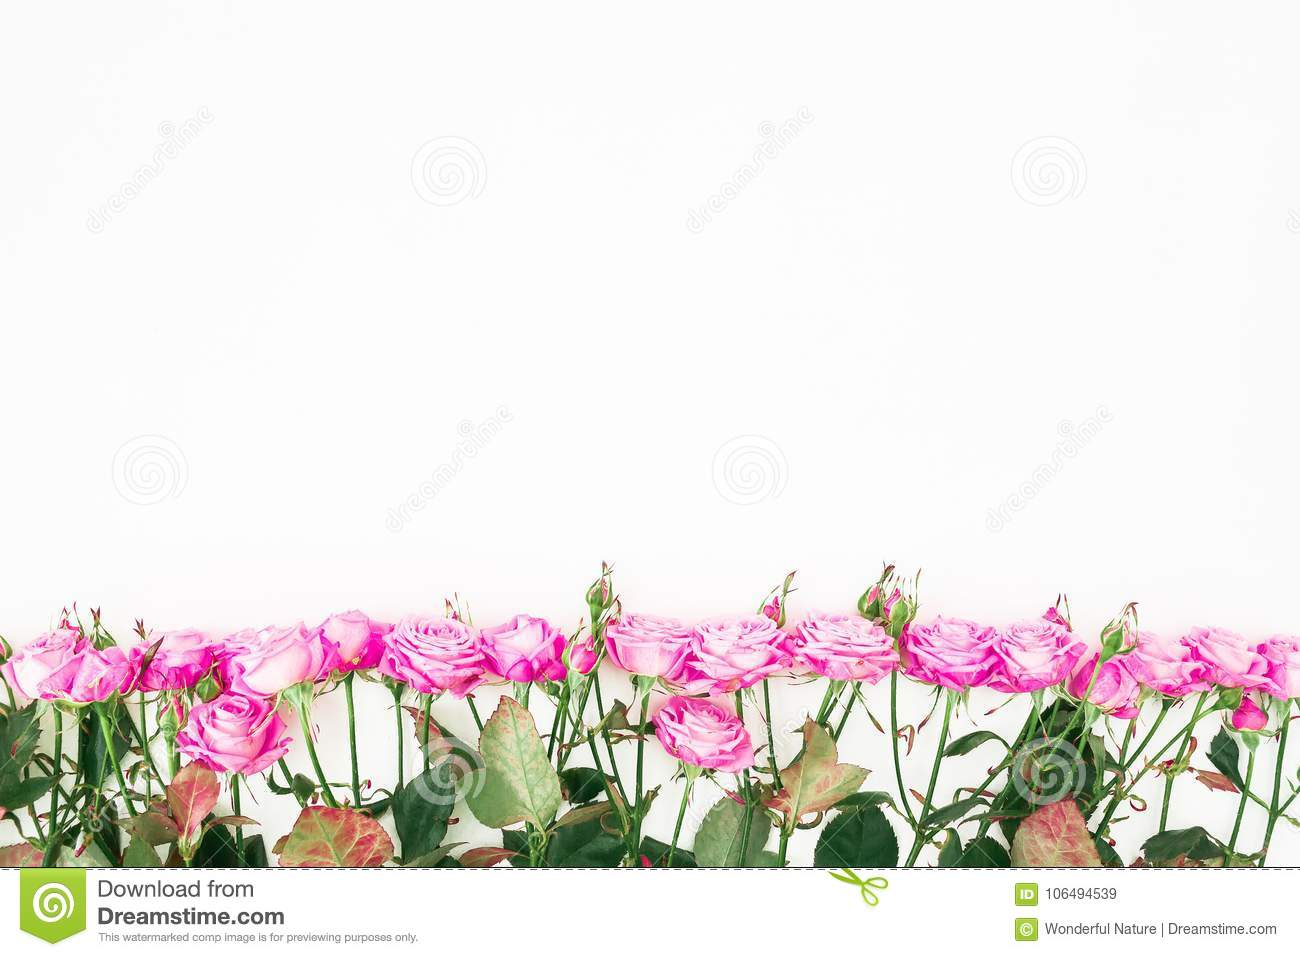 Flower border pattern of pink roses, branches and leaves on white background. Flat lay, Top view.